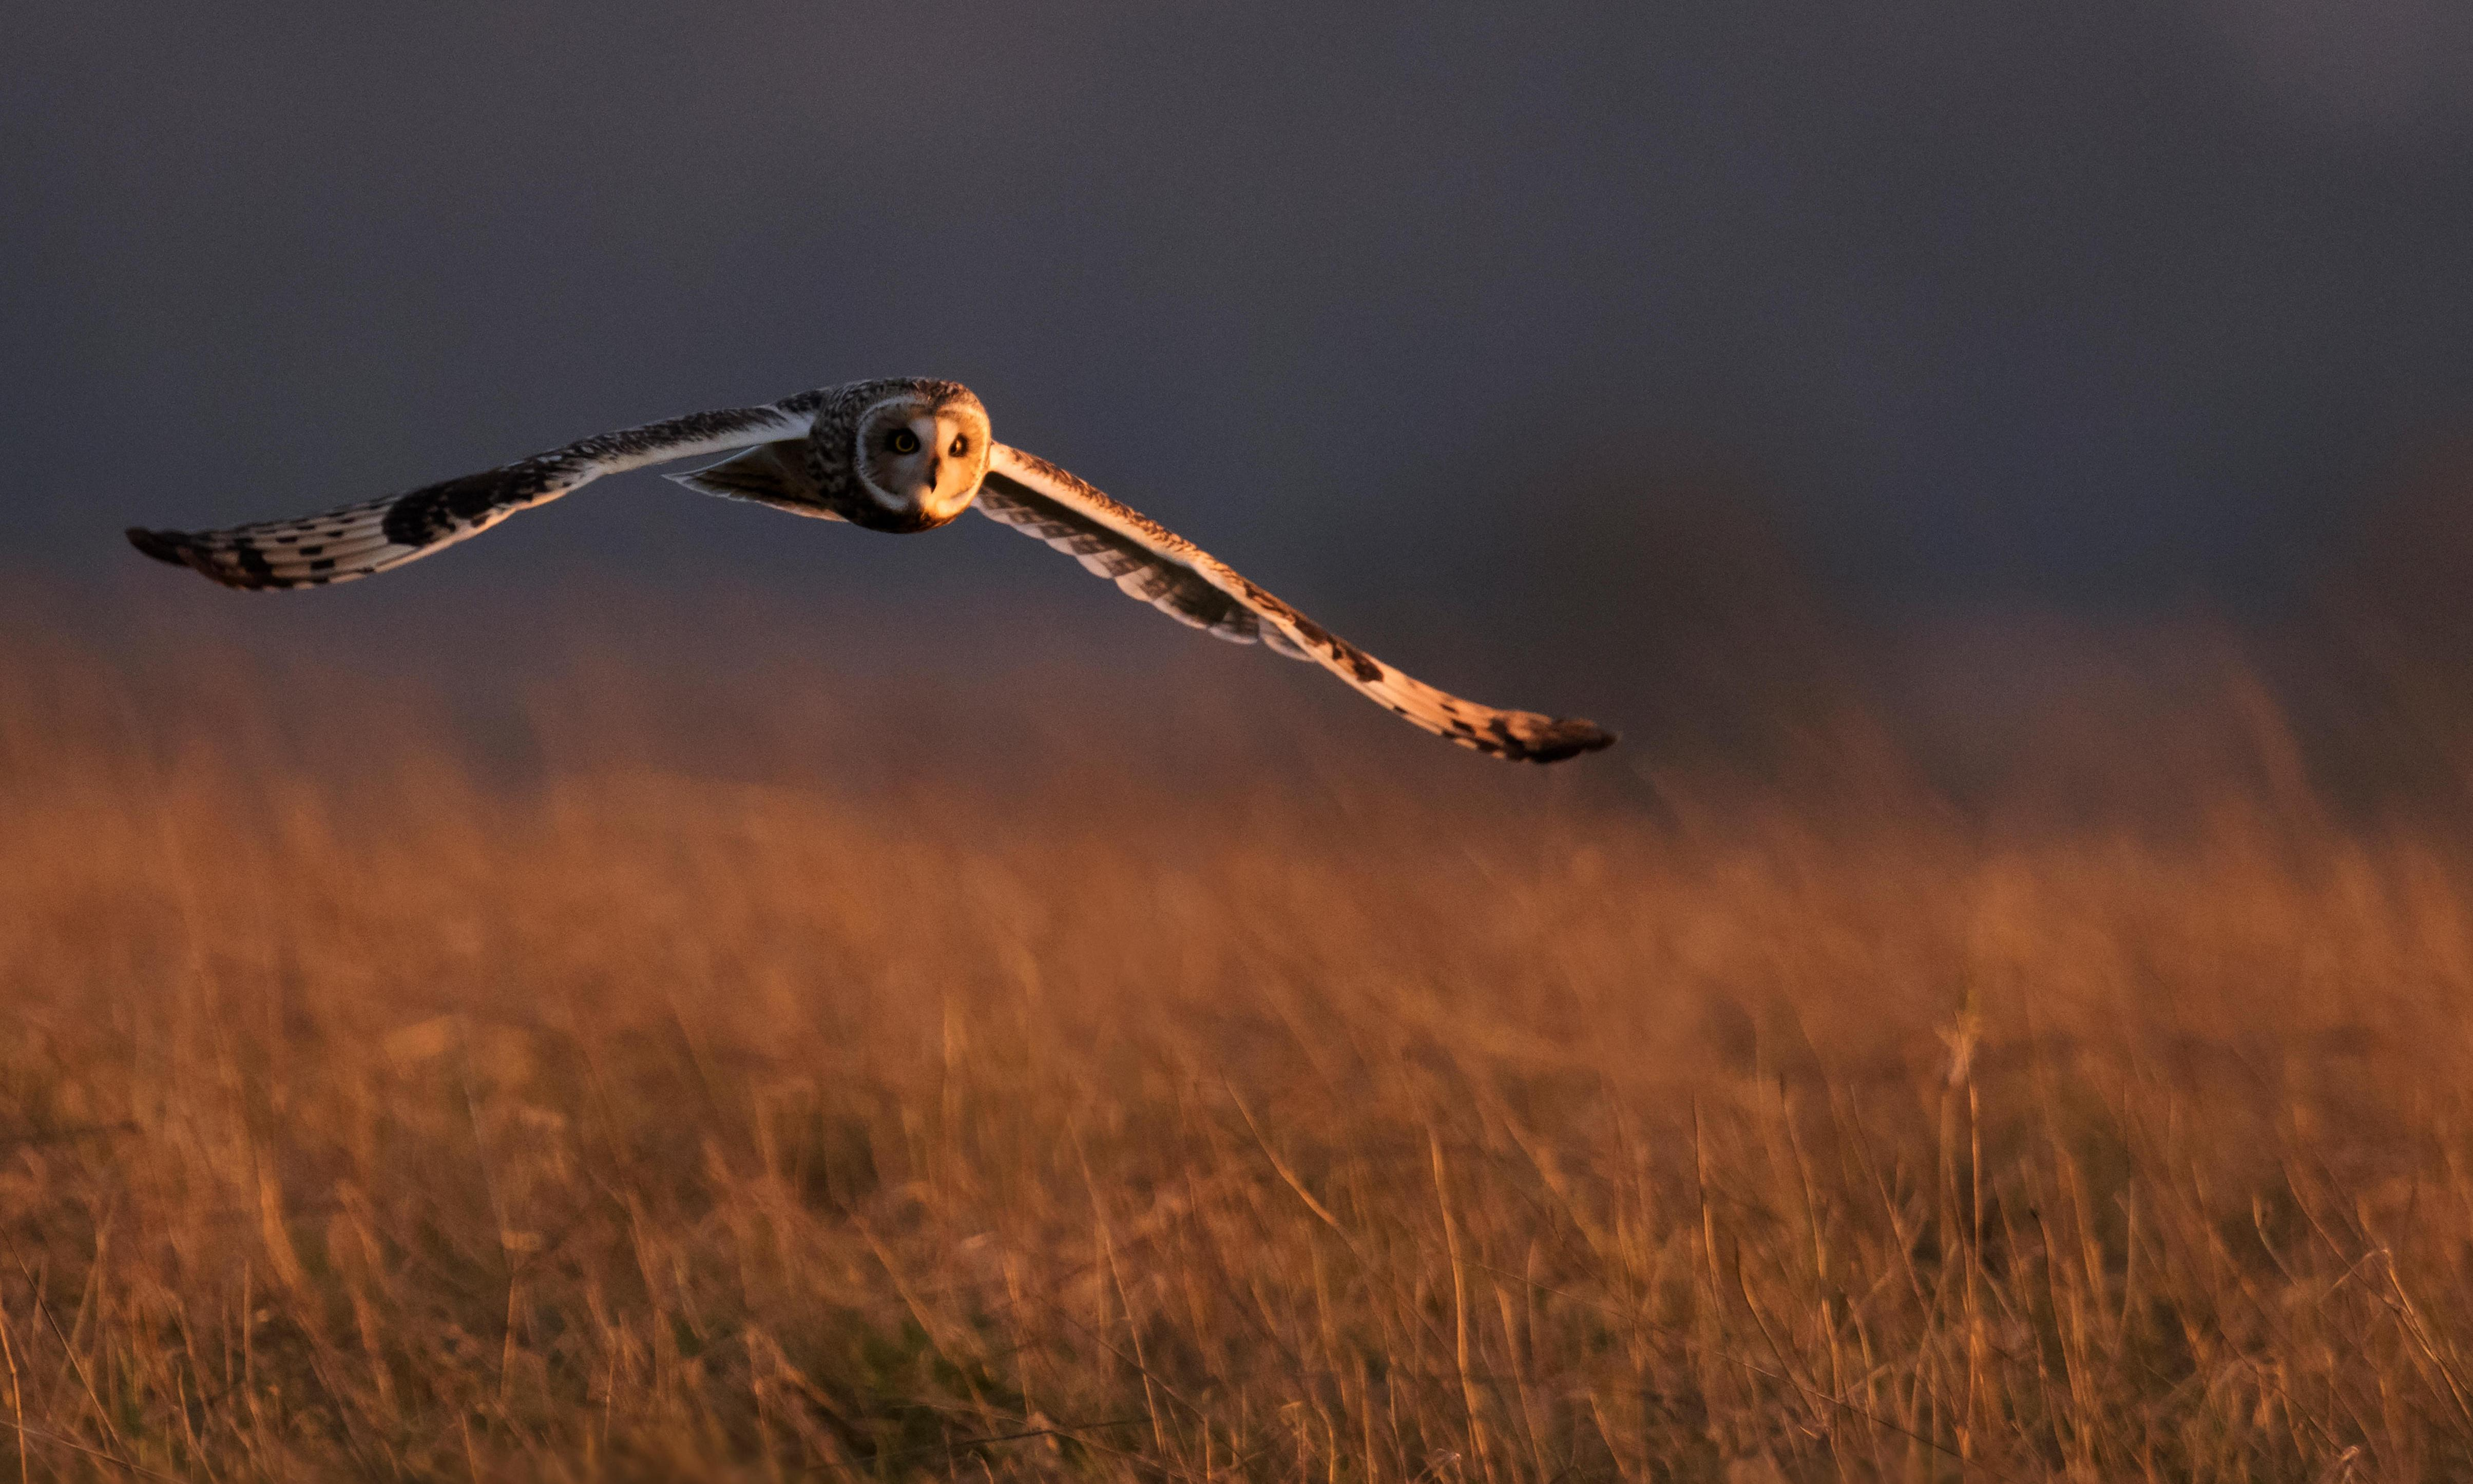 Country diary: a shortie scouts for prey in the fading light